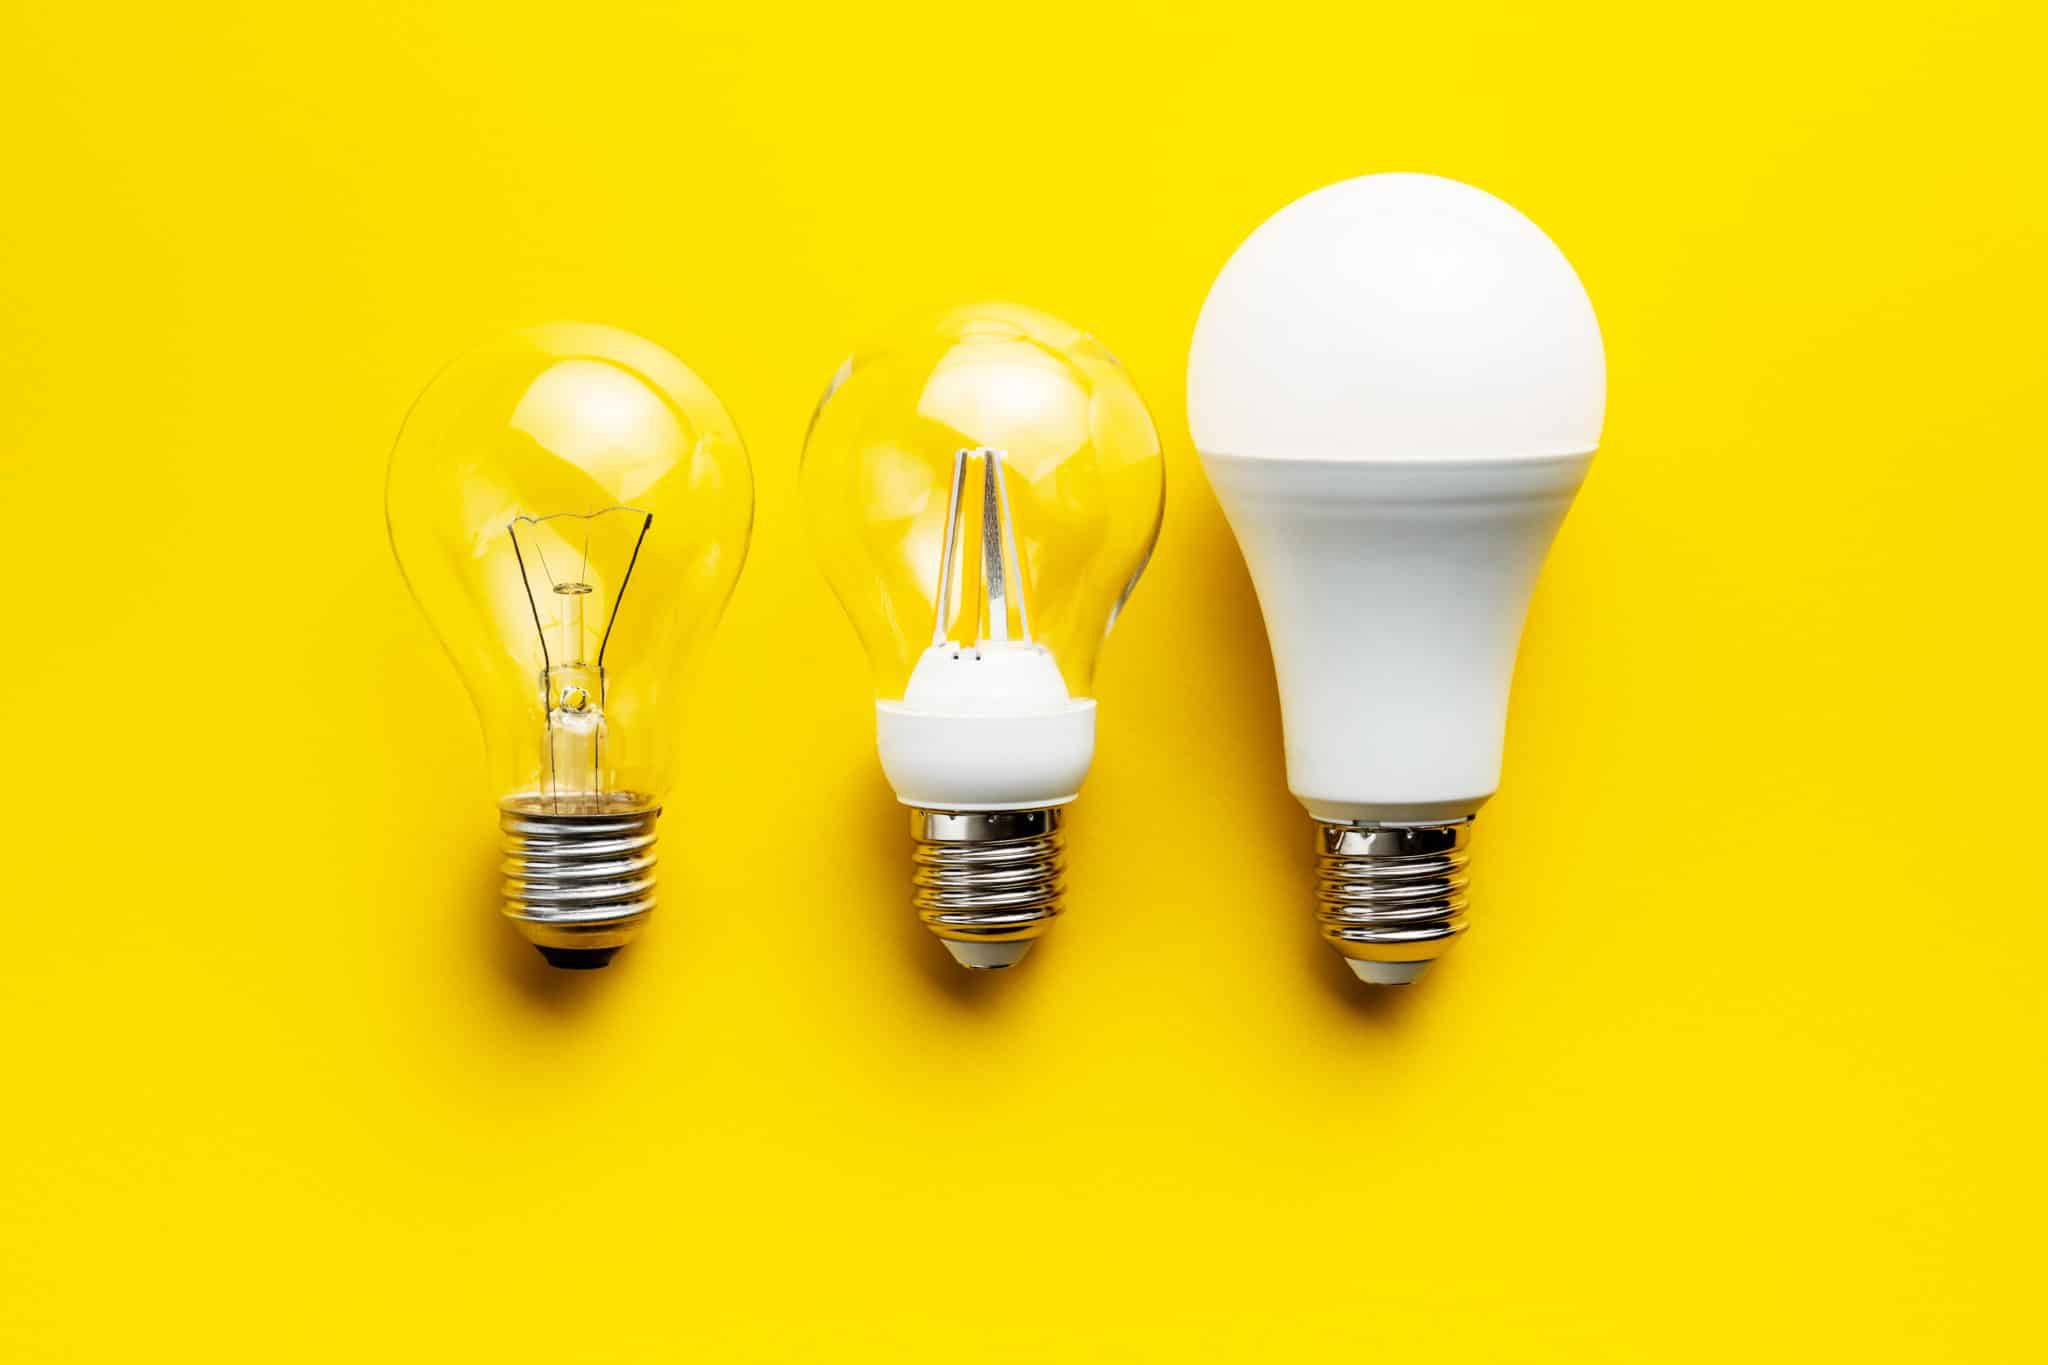 Energy saving and classic light bulbs on yellow background.